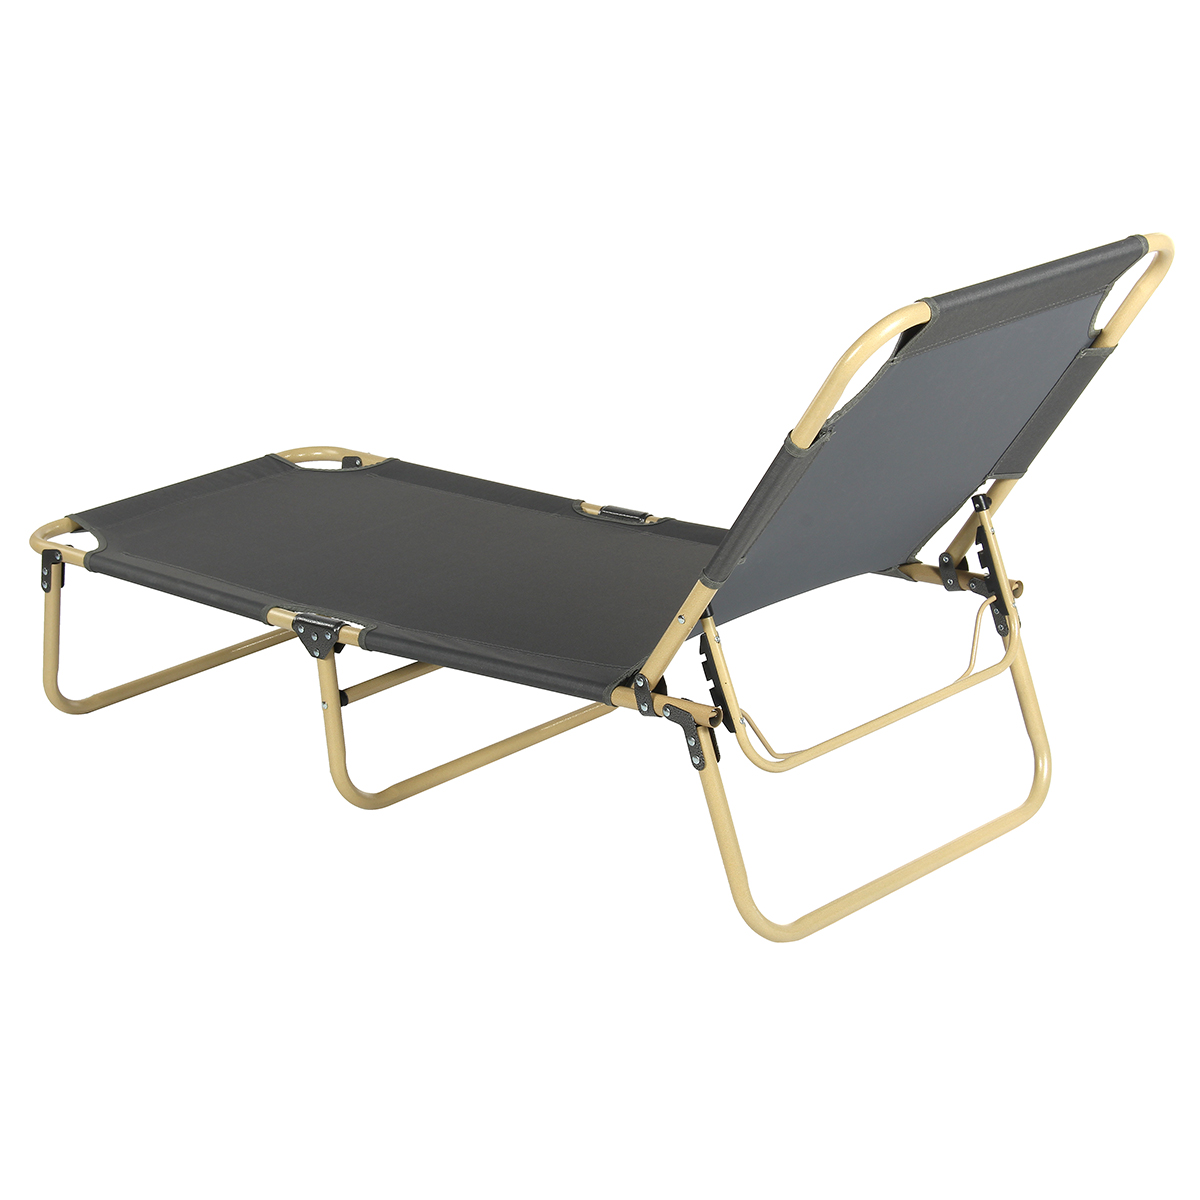 173x56x30cm Portable Fold up Guest Foldable Folding Bed Recliner Travel Outdoor